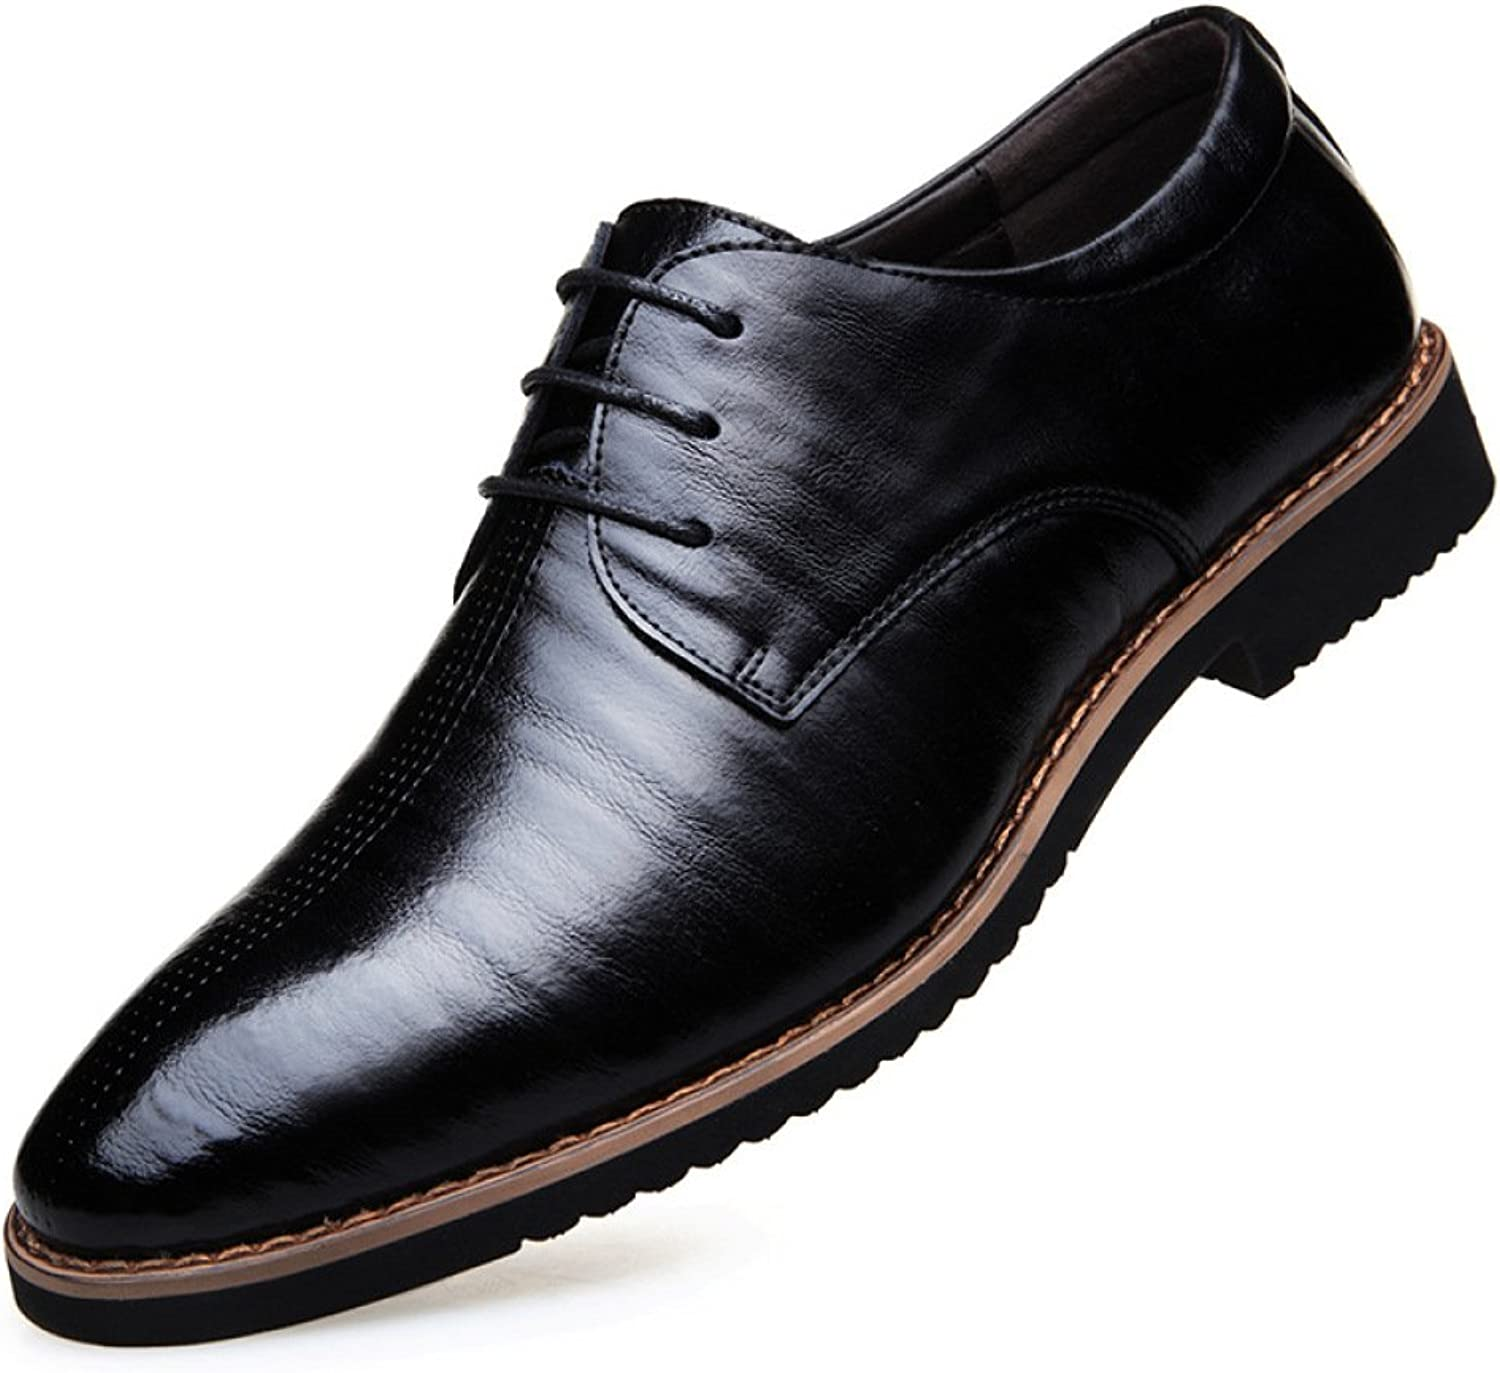 WLFHM Men's Casual Business shoes to Work Dress Leather Men's shoes Wedding shoes